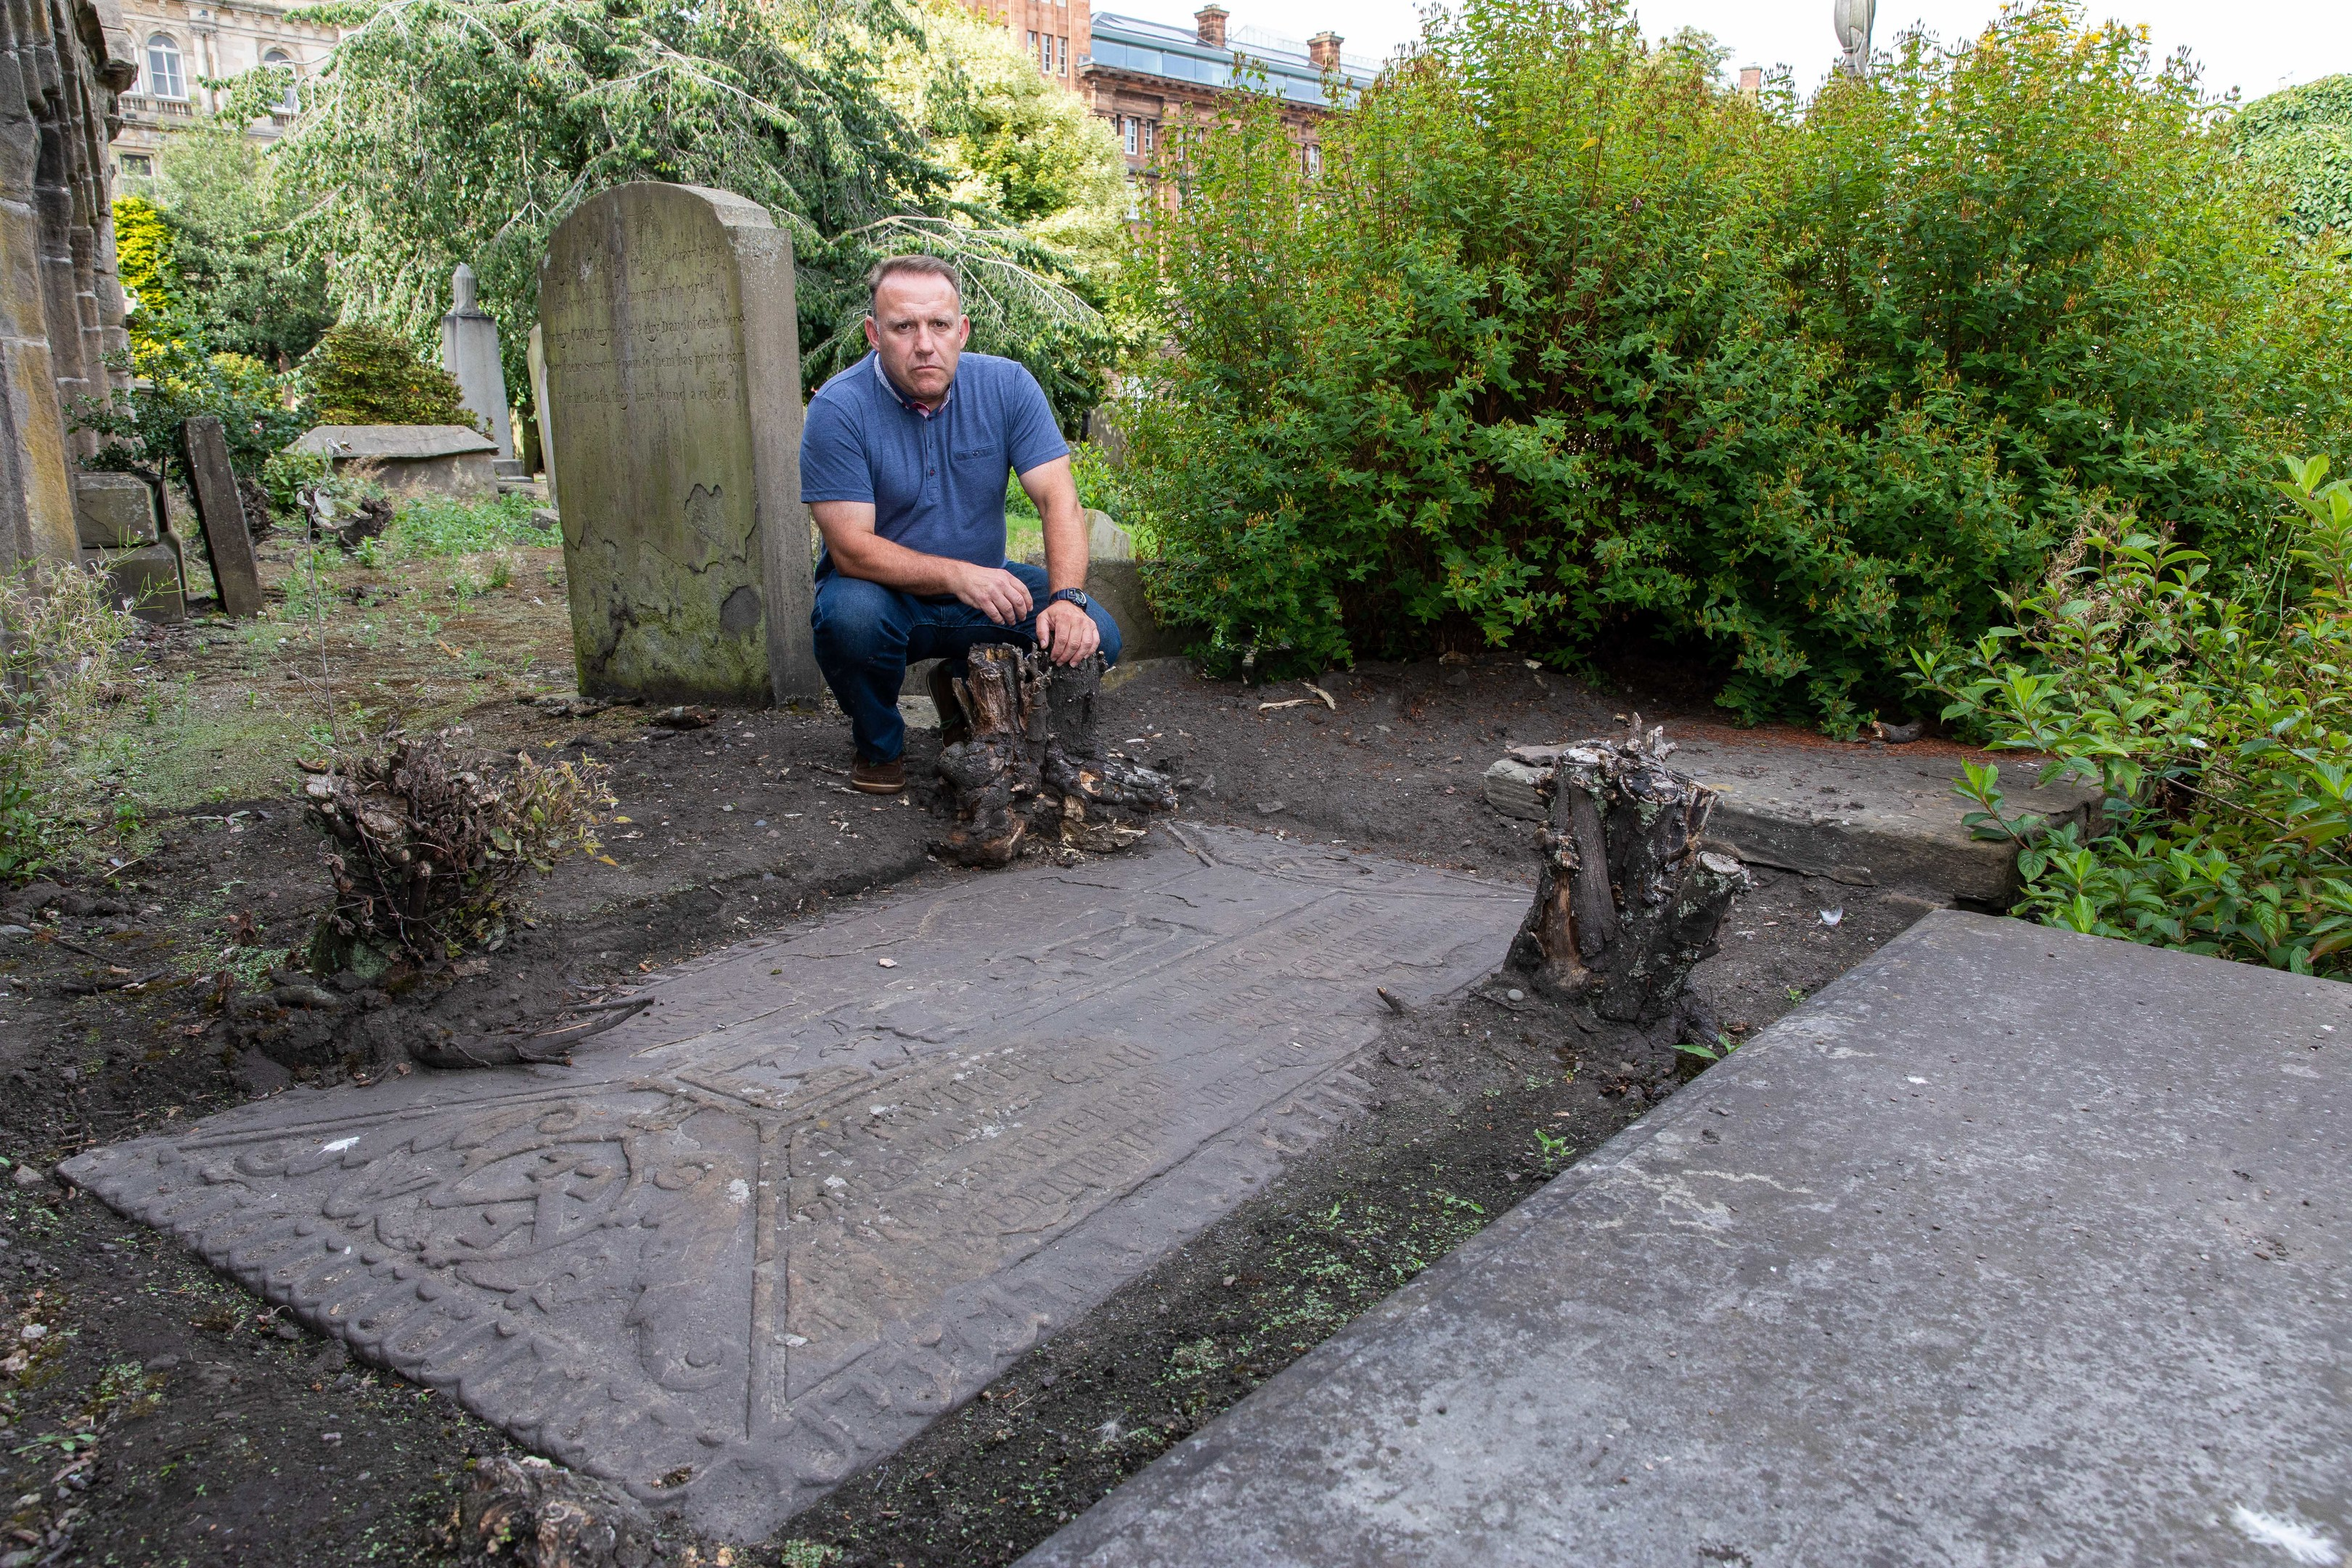 The 400-year-old gravestone was damaged after it was uncovered by a member of the public